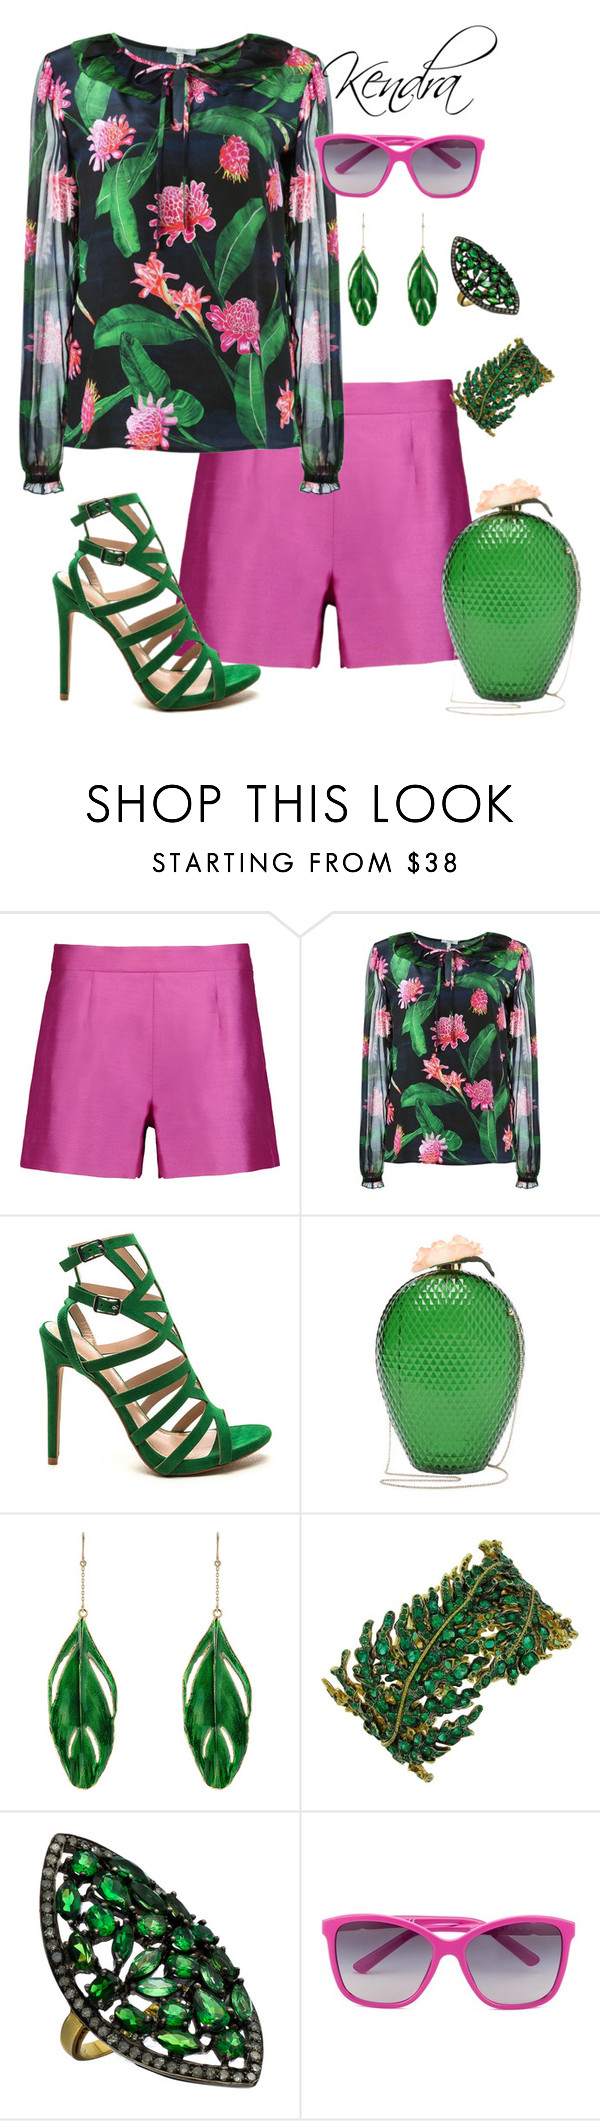 """Tropical "" by kmariestyles ❤ liked on Polyvore featuring Raoul, Isolda, Charlotte Olympia, Aurélie Bidermann, Divya Diamond and Dolce&Gabbana"